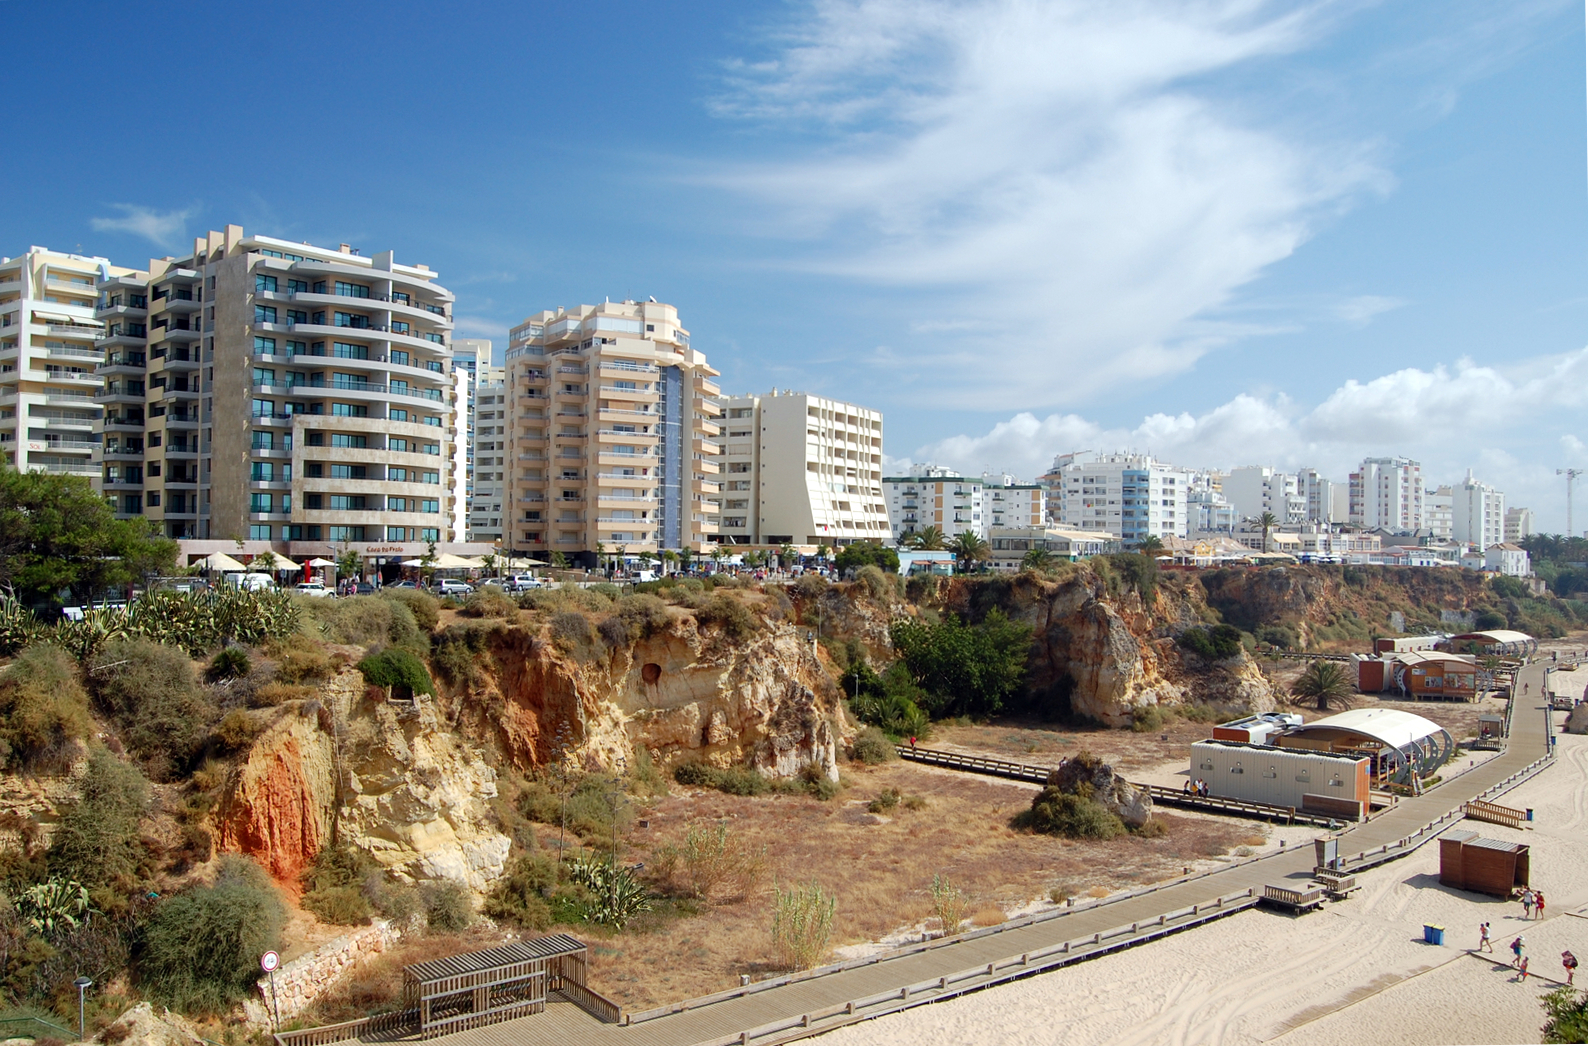 Portimao Portugal  City new picture : Apartment buildings at Praia da Rocha, Portimão Wikimedia ...